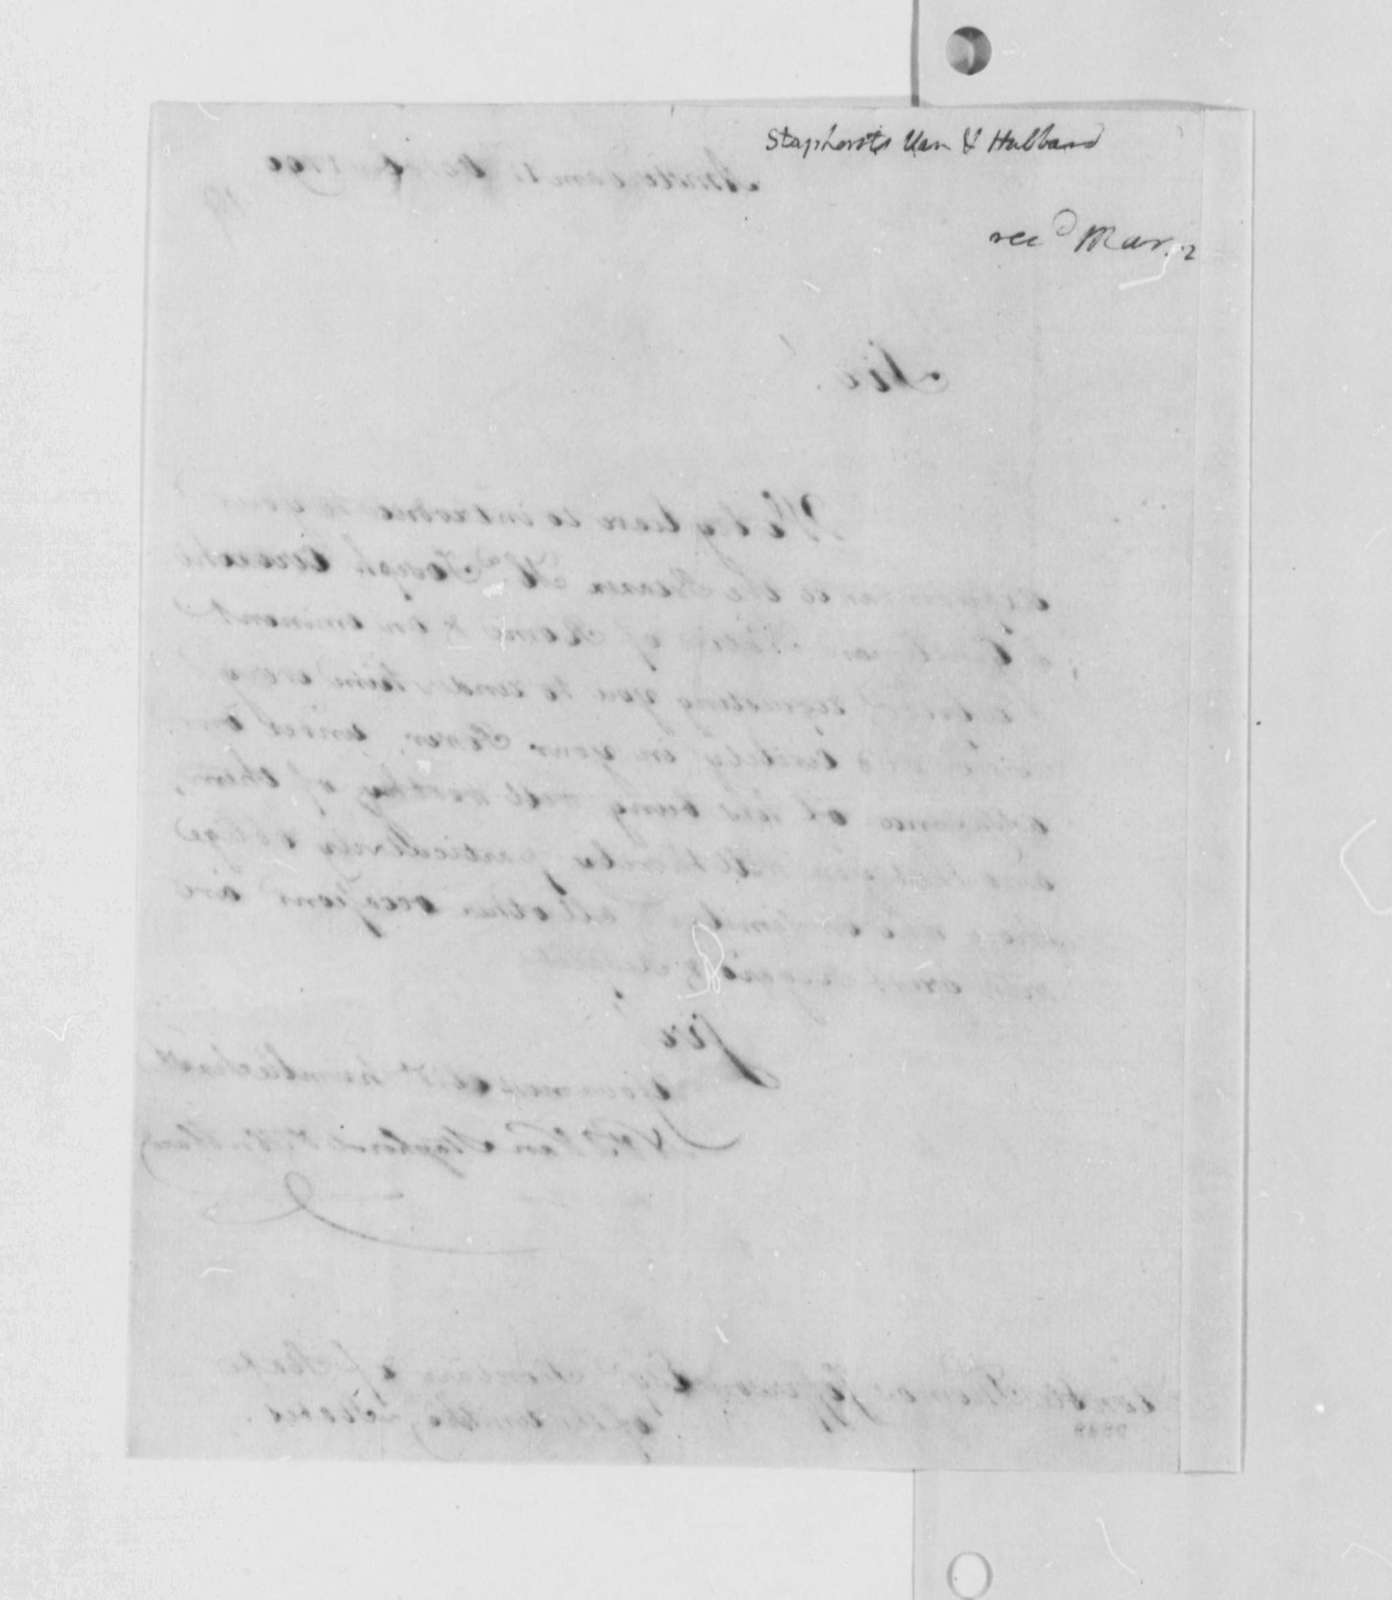 Van Staphorst & Hubbard to Thomas Jefferson, October 11, 1790